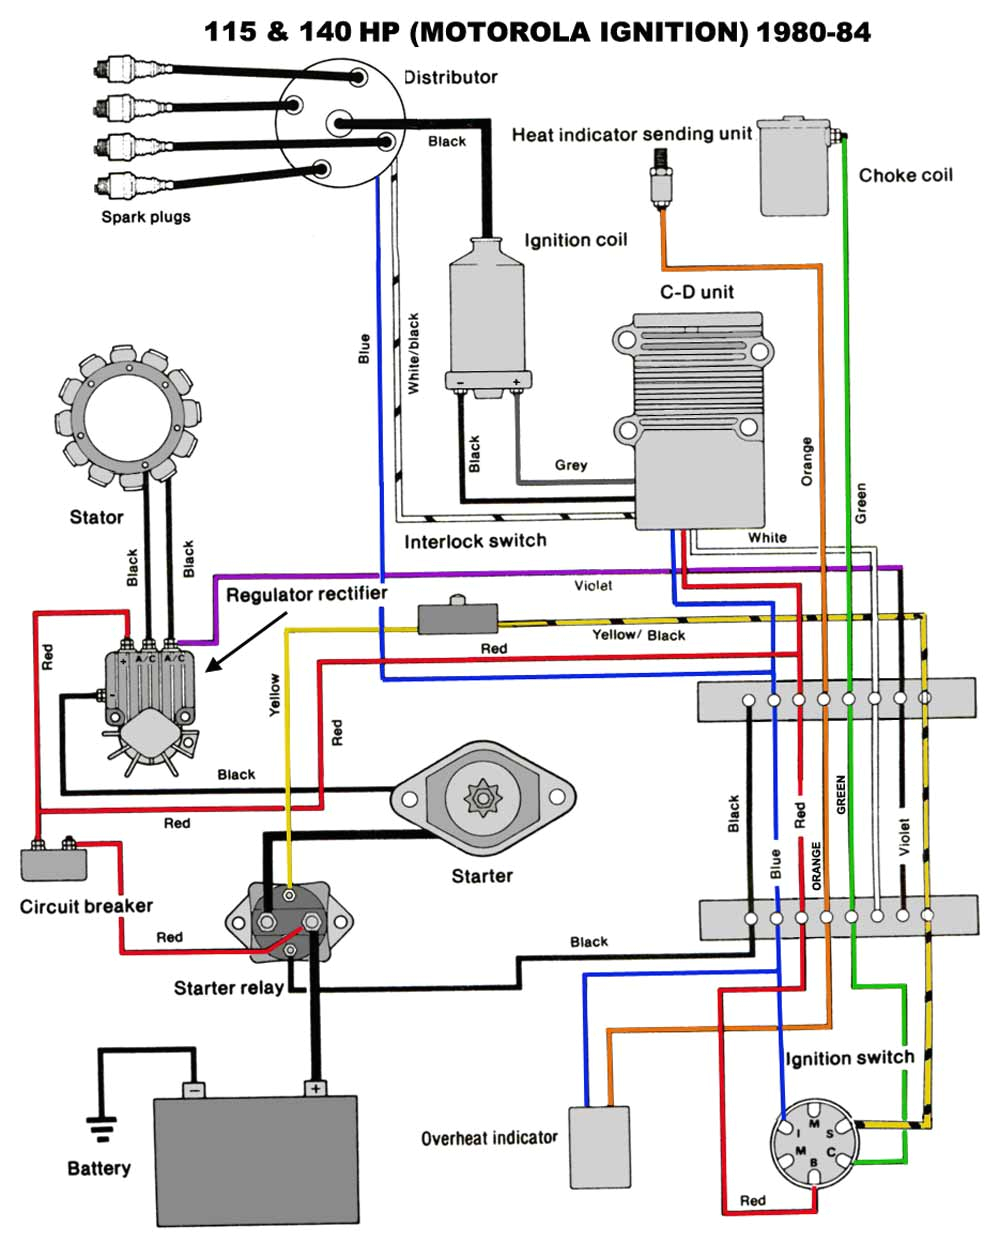 Yamaha 115 Outboard Wiring Diagram Yamaha F115 Engine Wiring Diagram Wiring Diagram Database Site